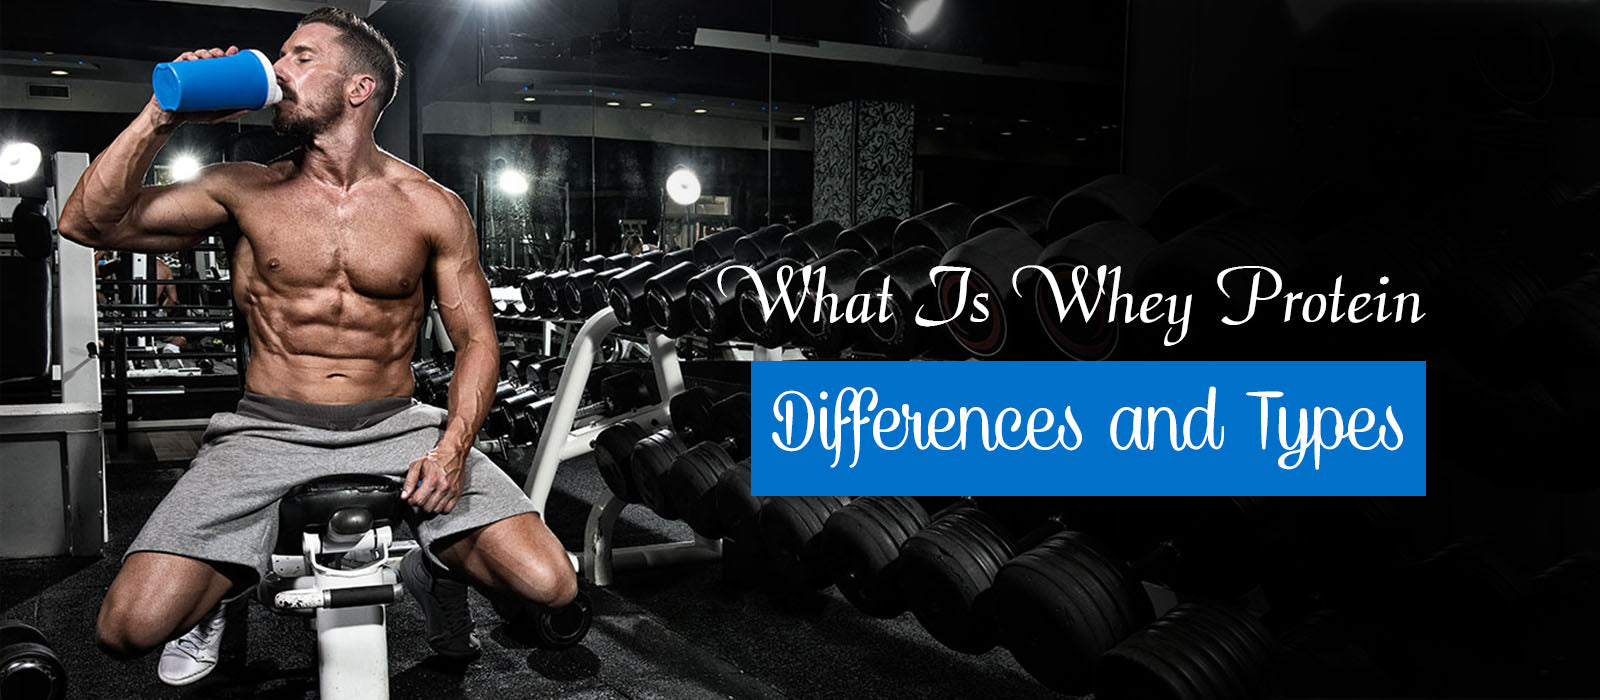 What Is Whey Protein - Differences and Types